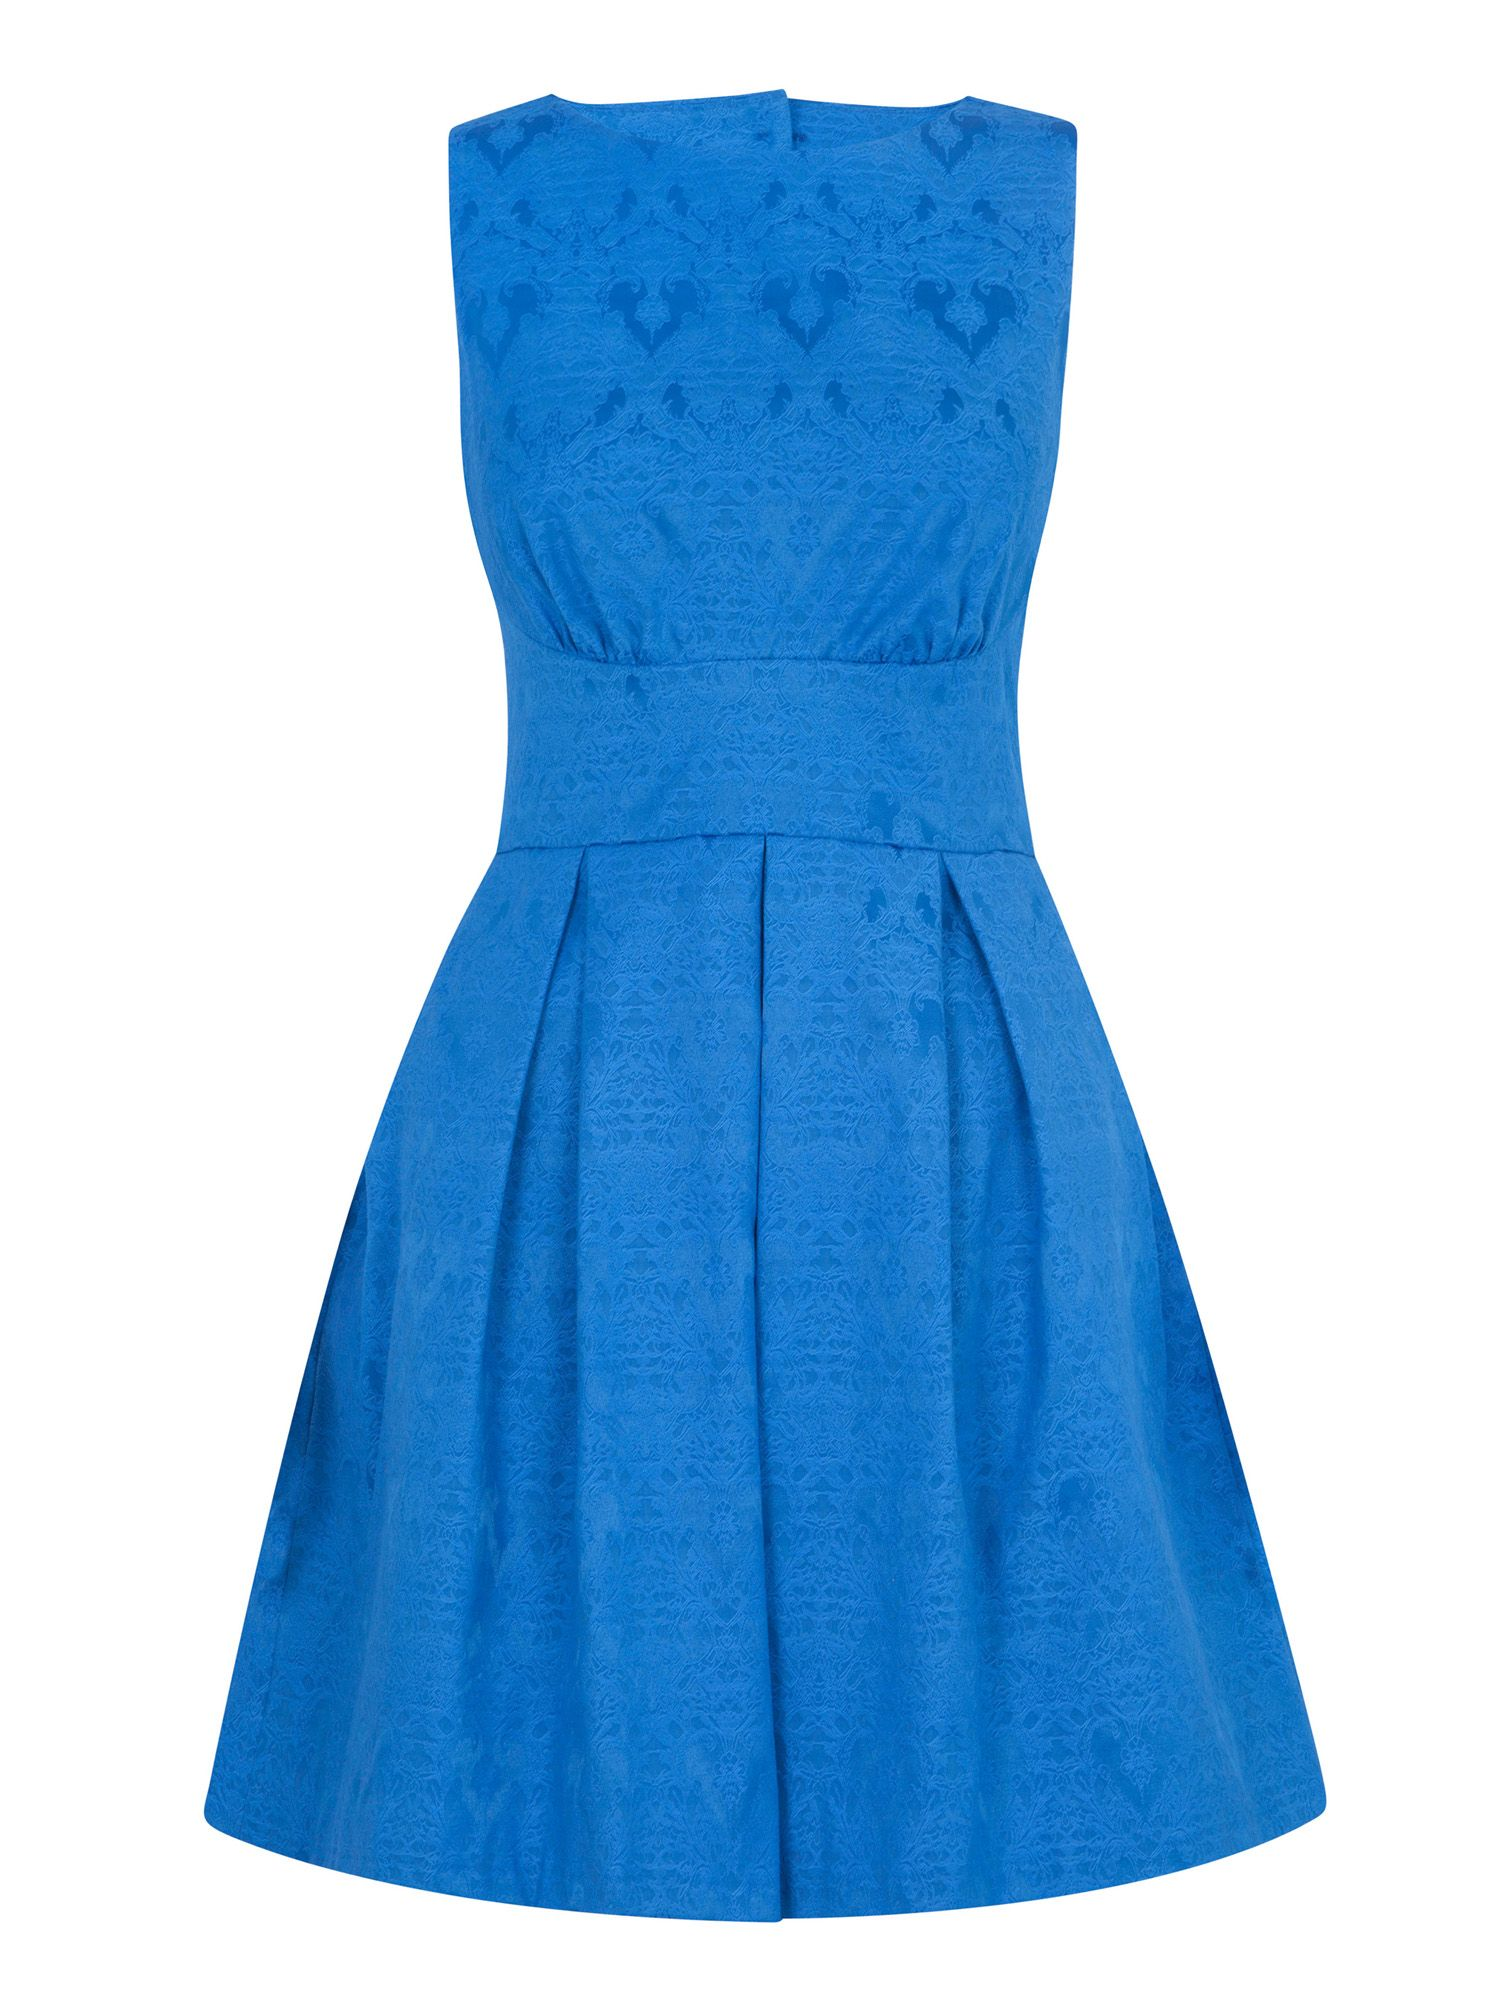 Jacquard cut out back dress